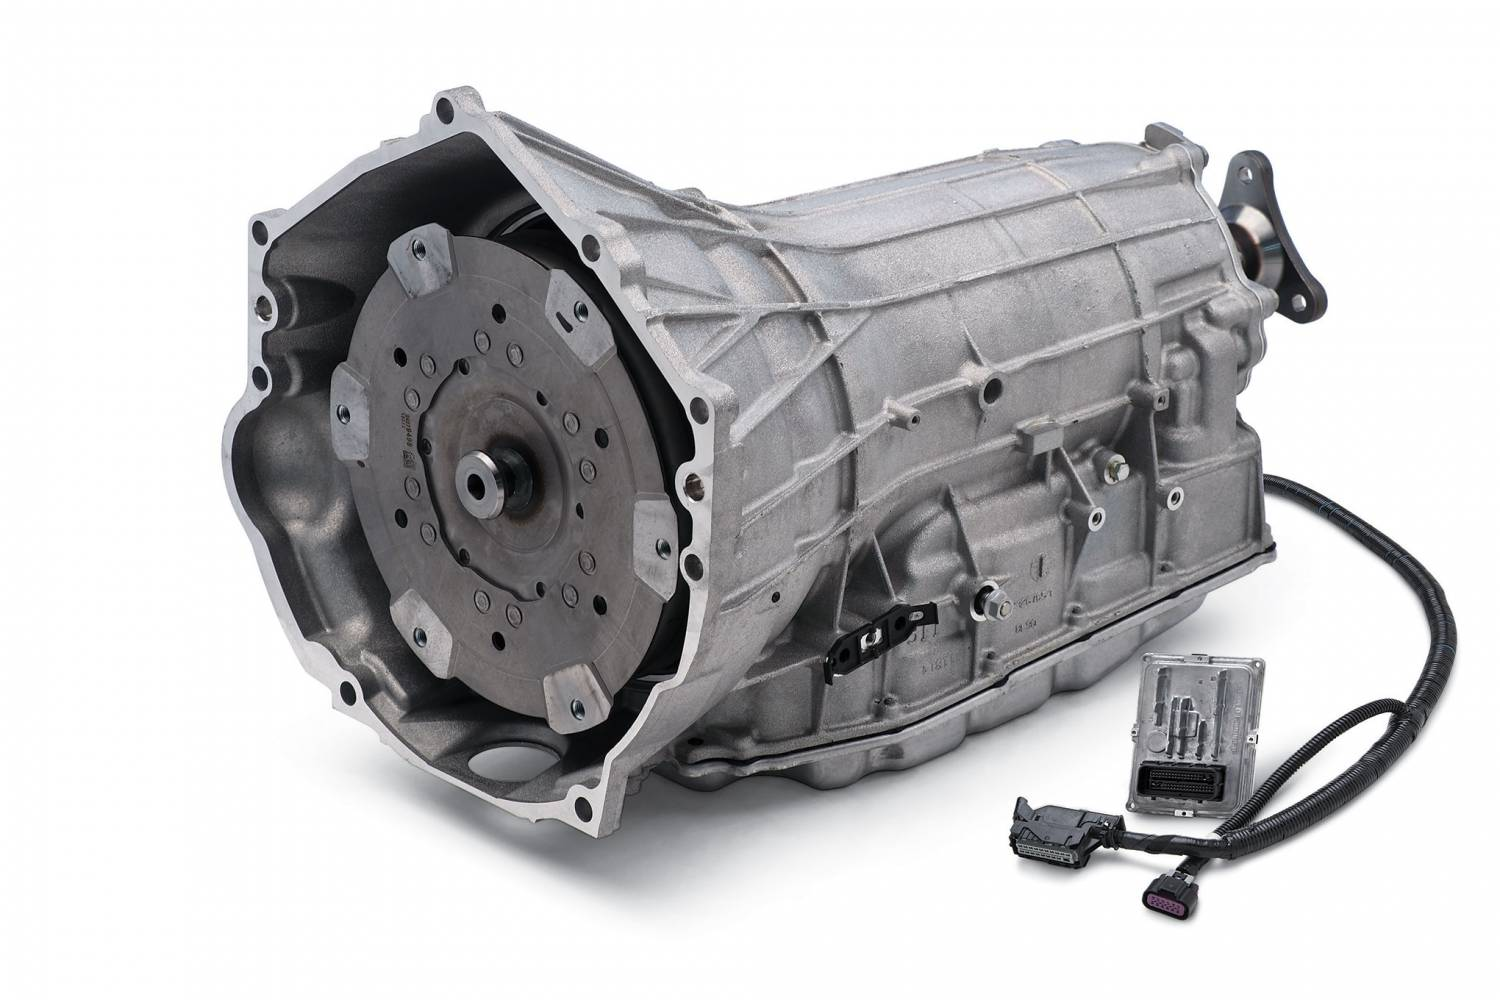 19371500 - 8L90E 8-Speed Automatic Transmission Package for GM LT1